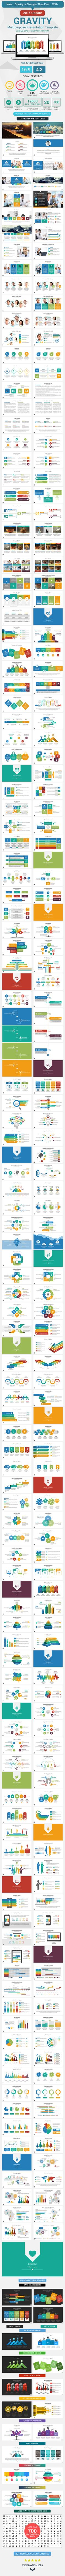 stampede multipurpose powerpoint template pinterest business